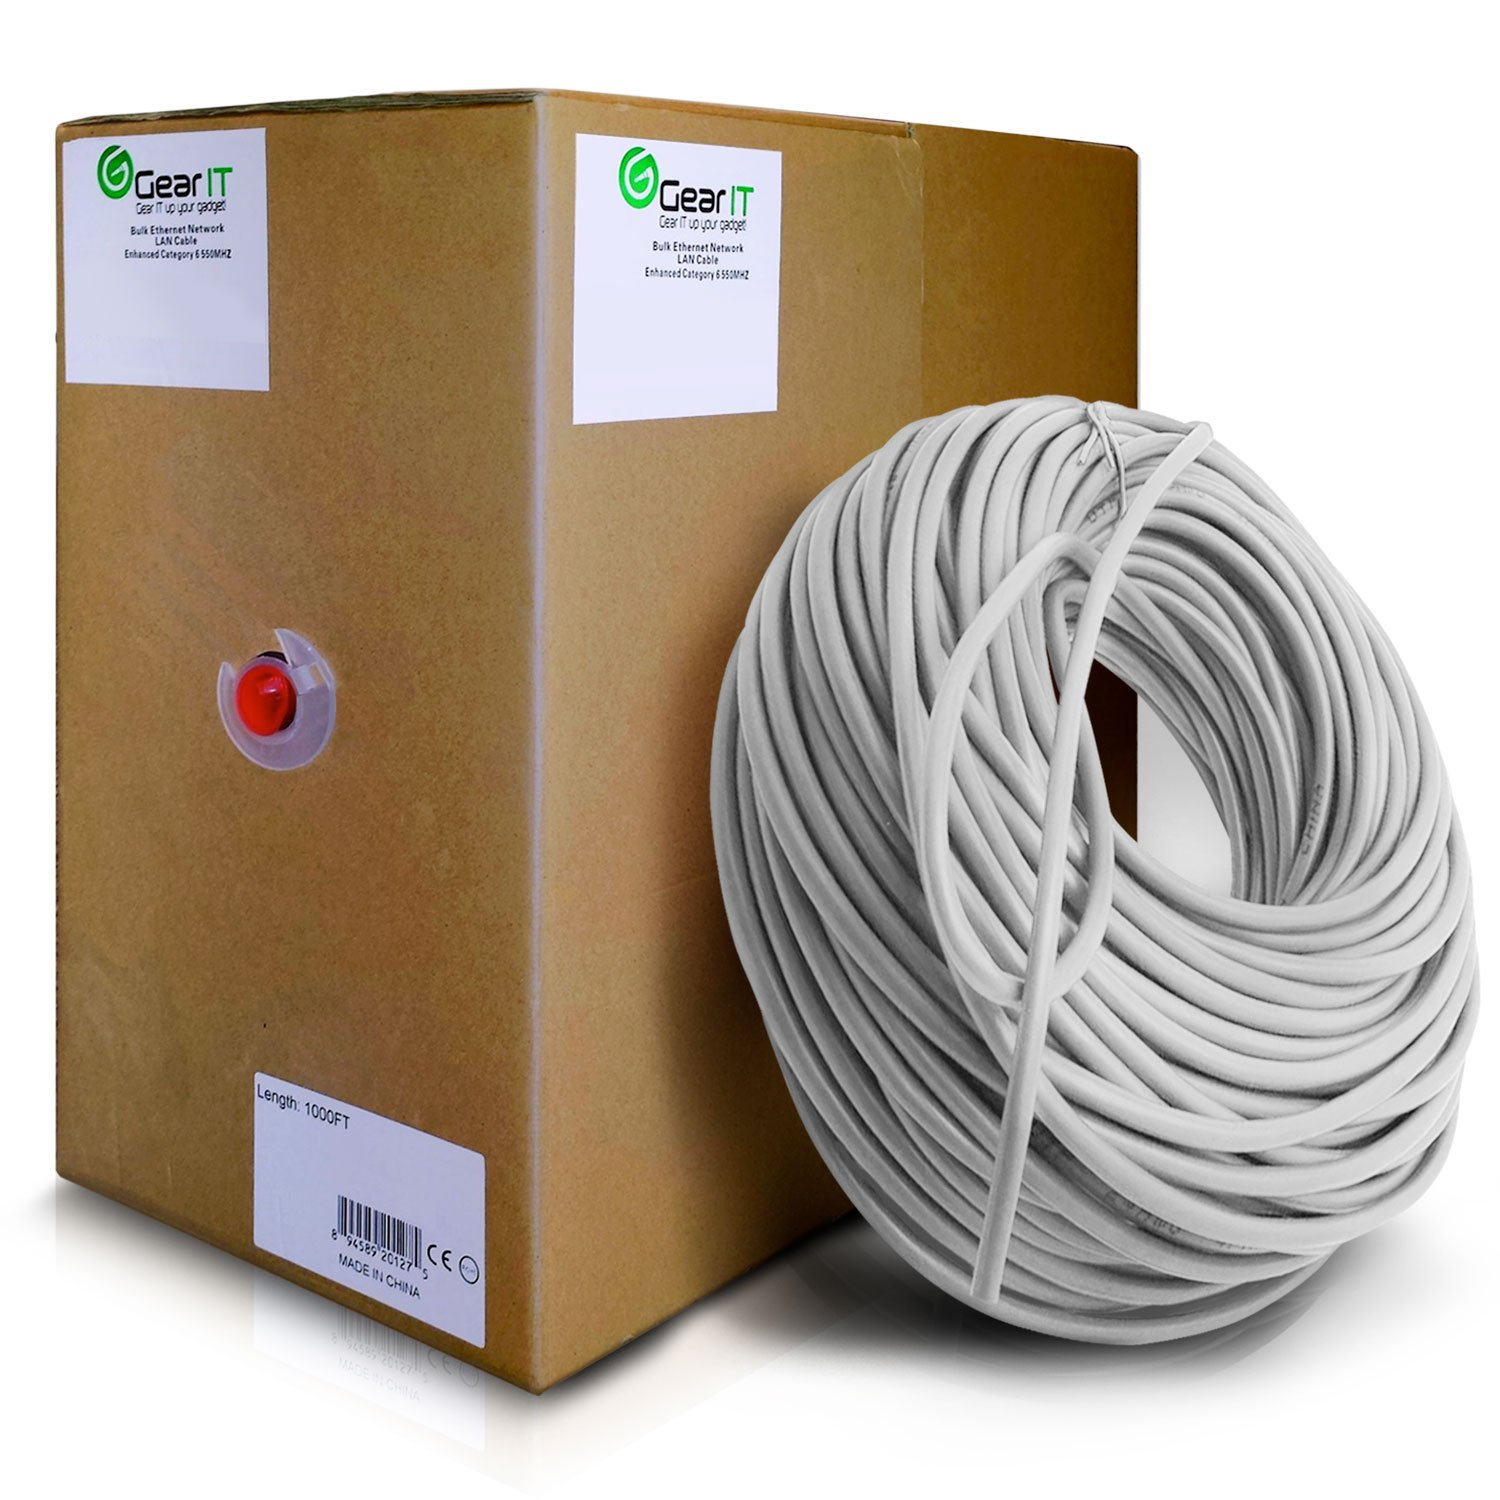 GearIT 1000 Feet Bulk Cat6 Ethernet Cable - Cat 6 550Mhz 23AWG Full Copper Wire UTP Pull Box - In-Wall Rated (CM) Solid Cat6, White